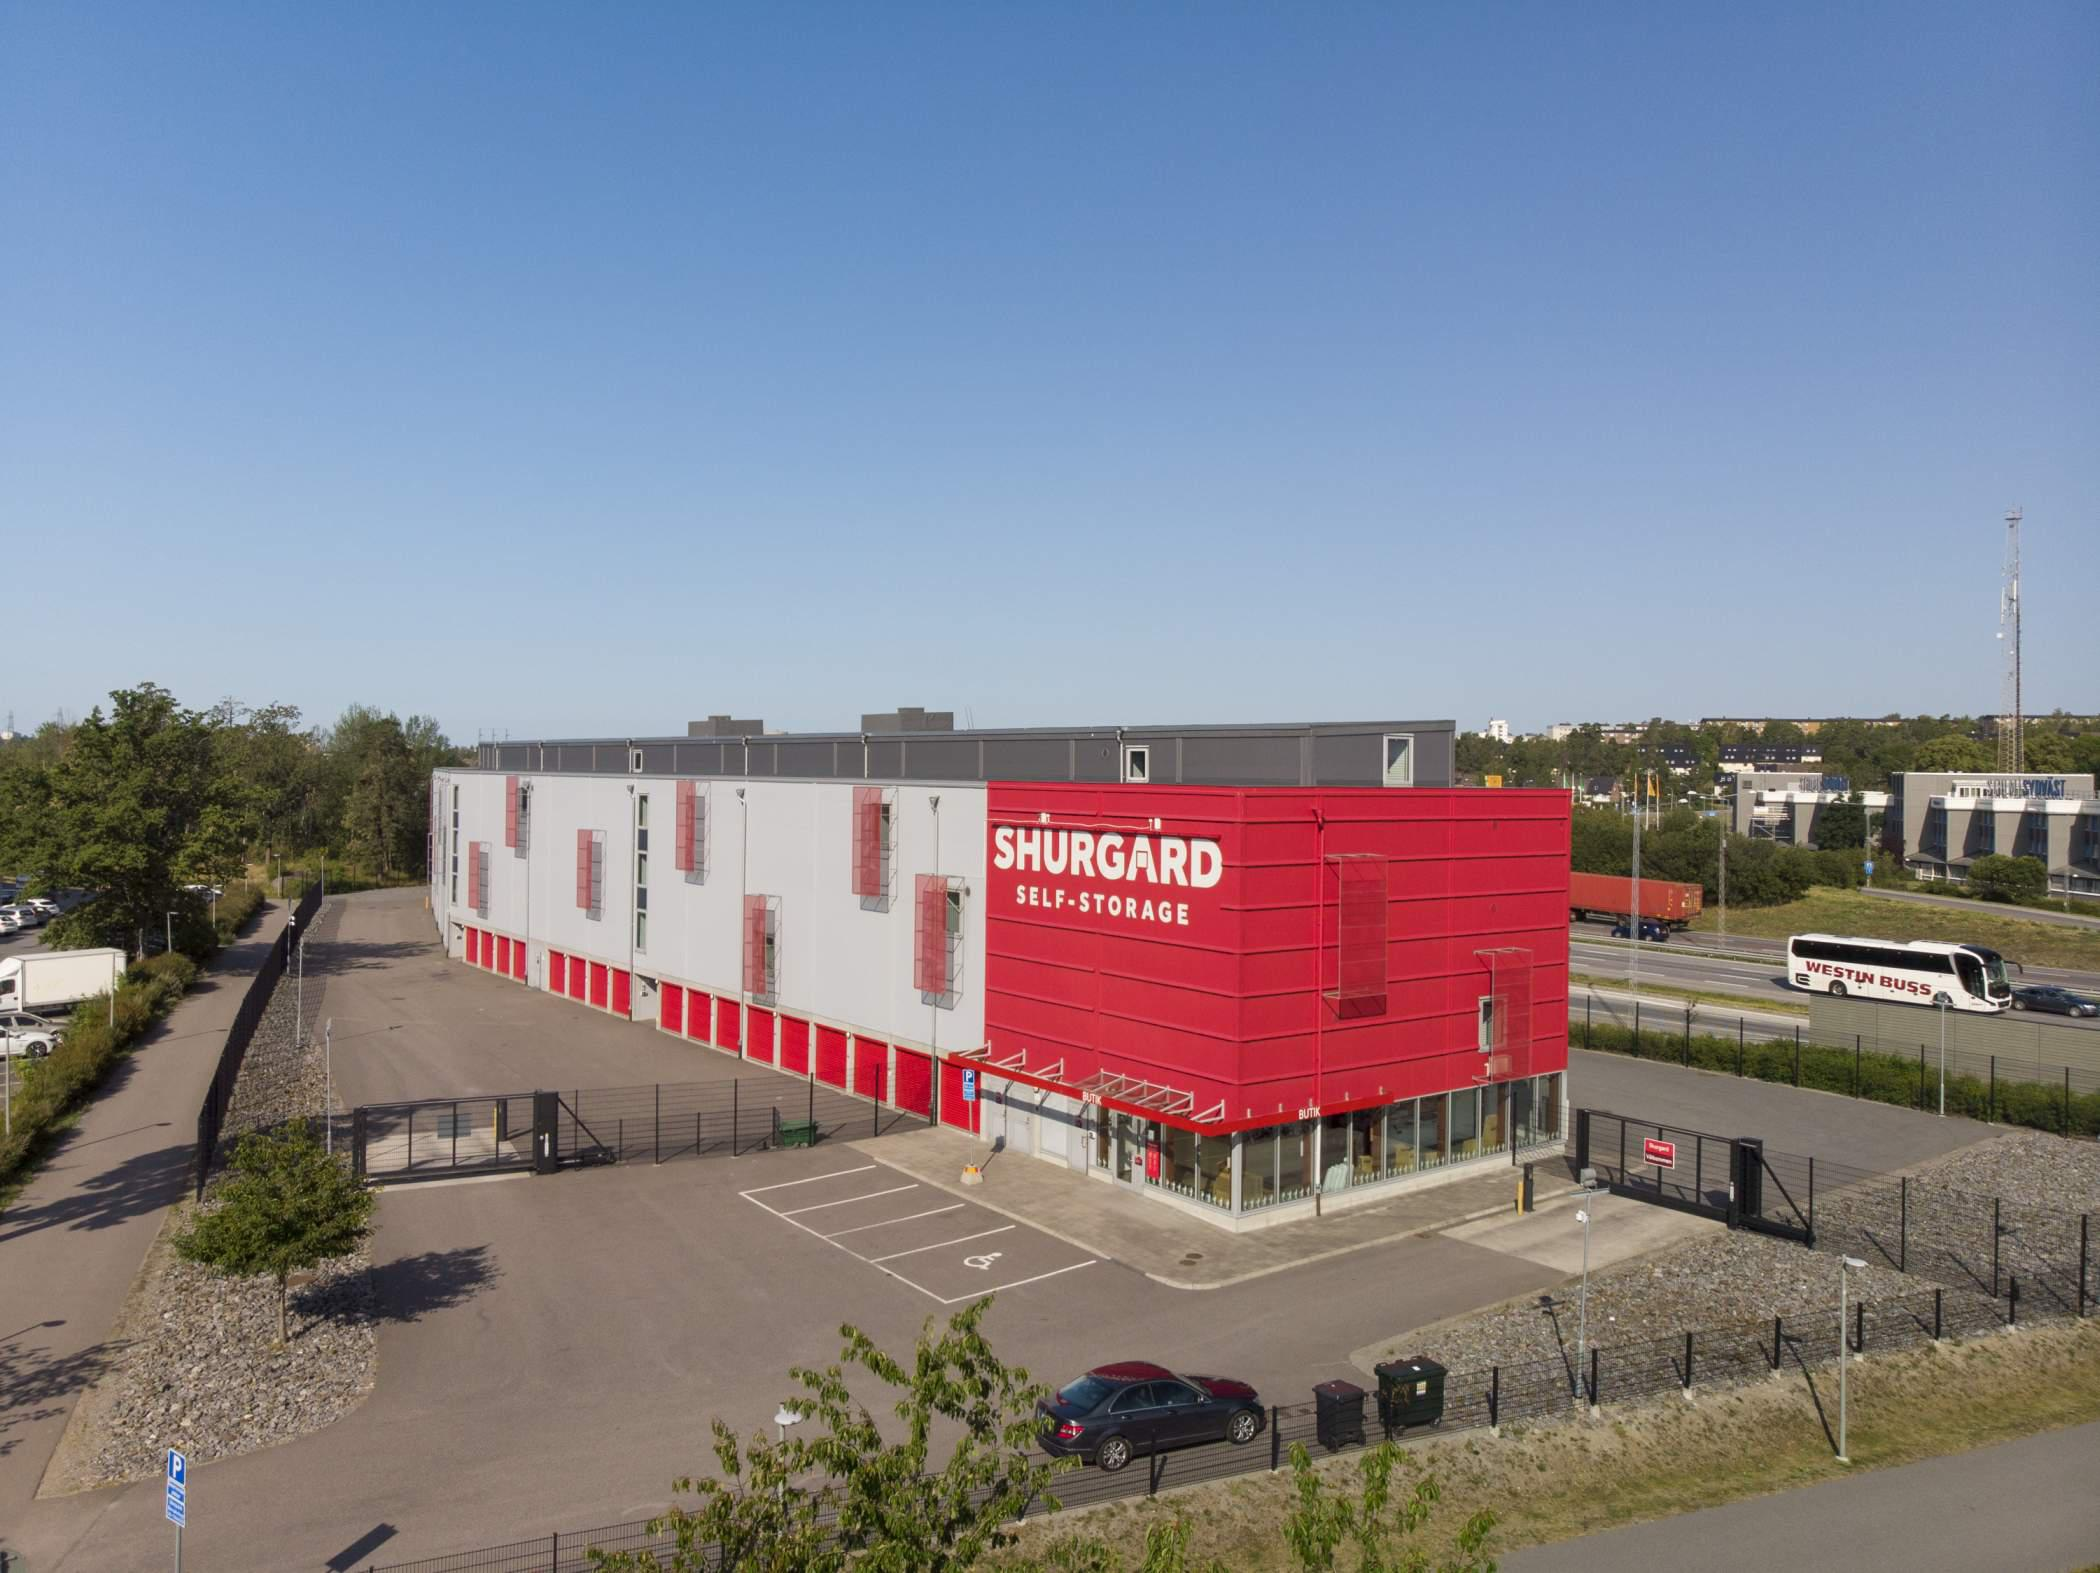 Shurgard Self-Storage Hägersten